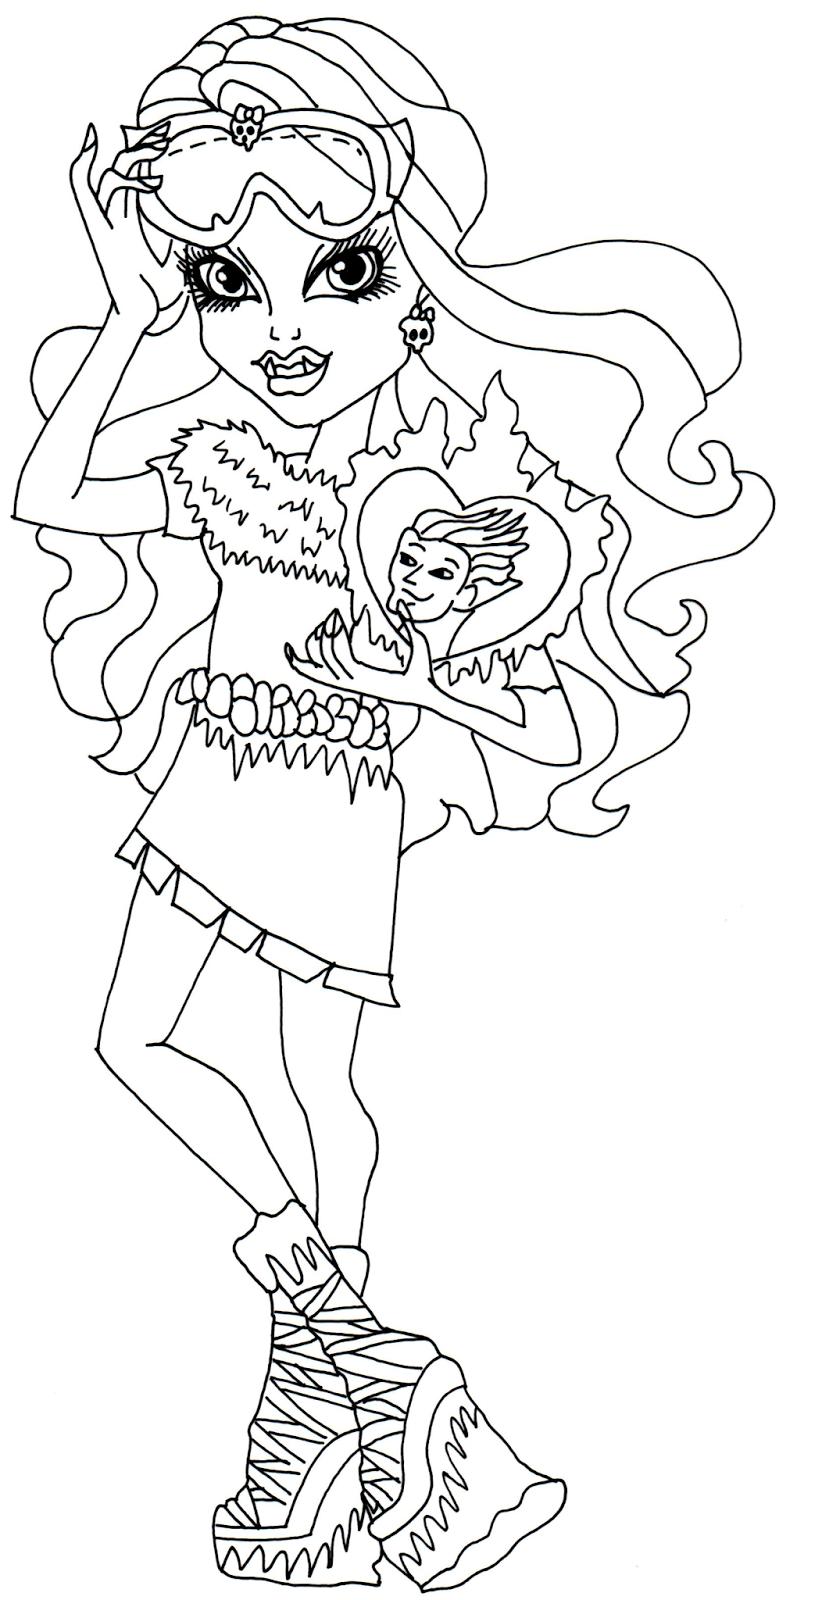 Monster High 1 Printable coloring pages